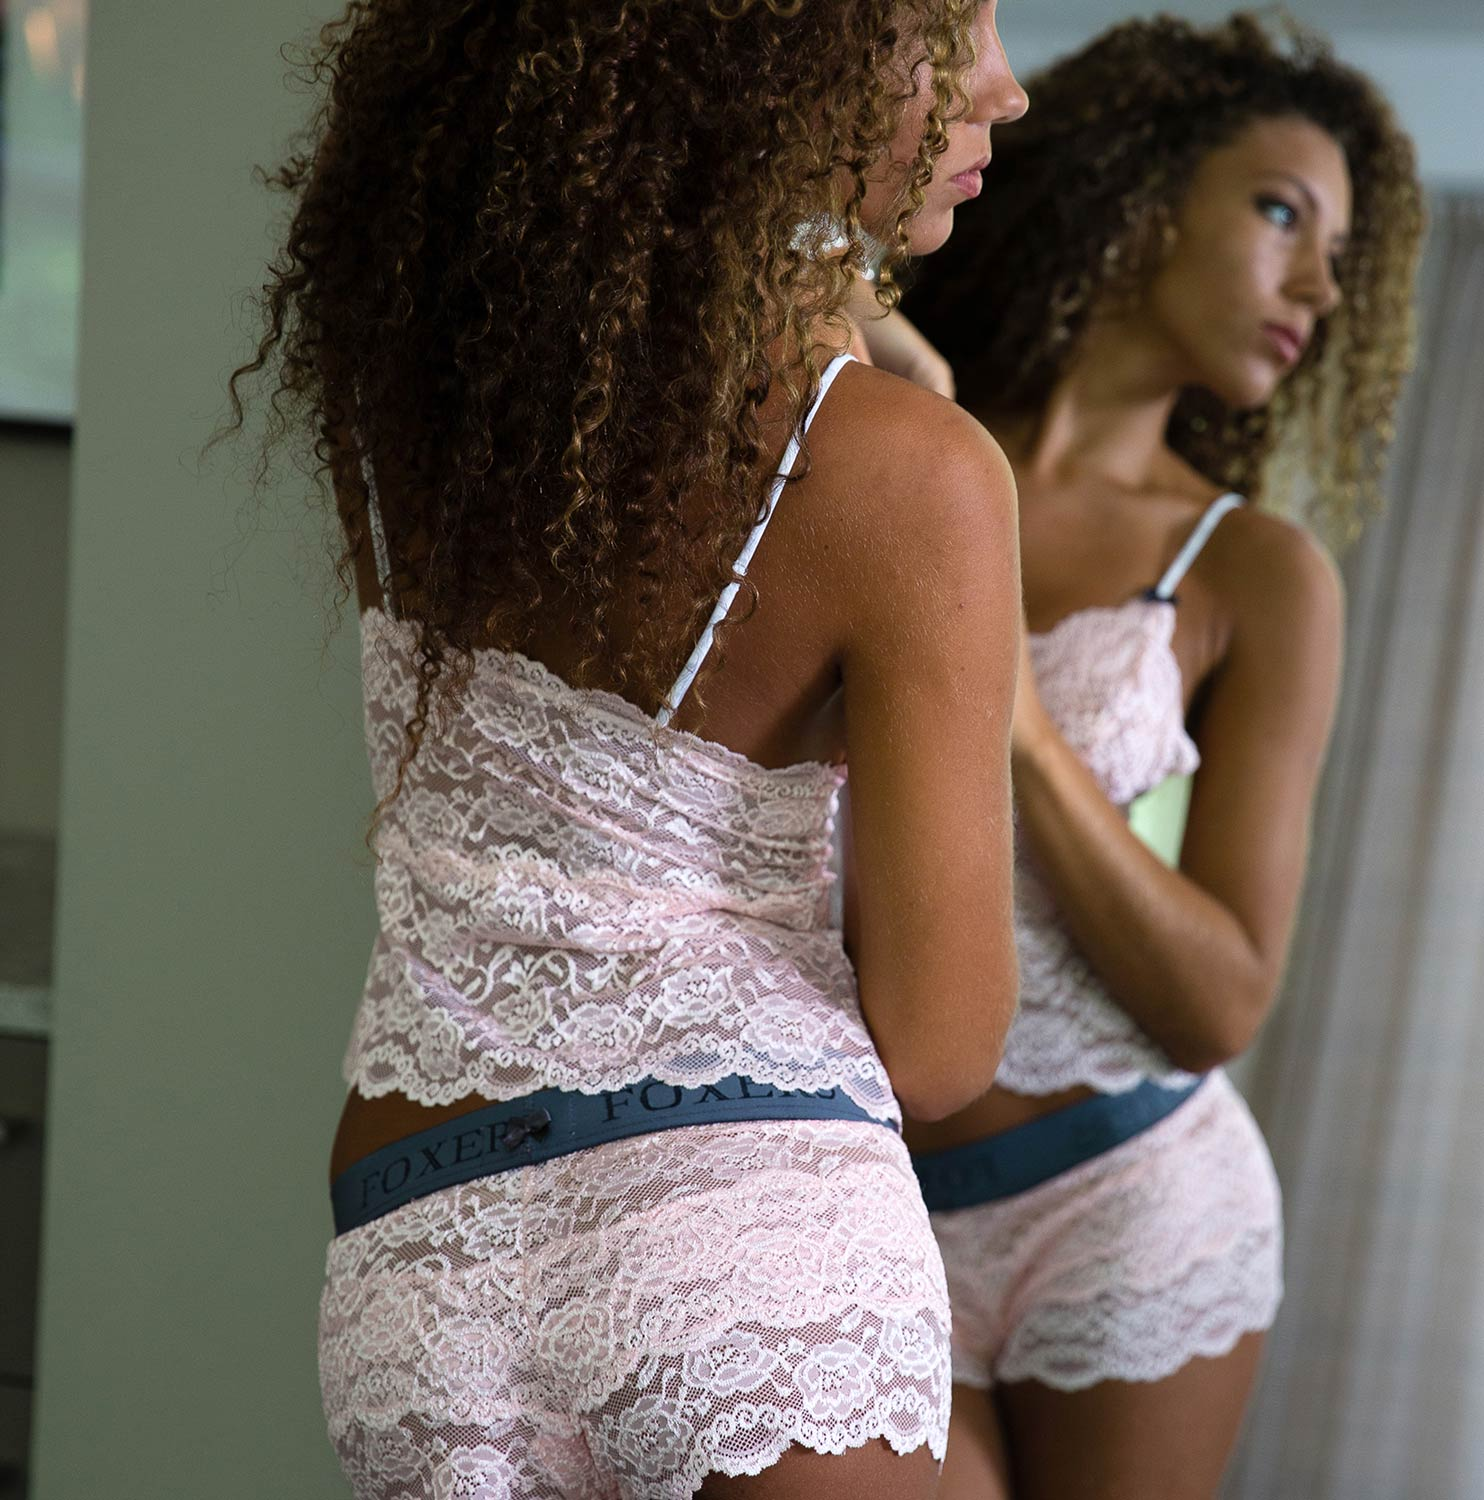 Jordan is wearing our Pink Lace Camisole and Matching Lace Boxers